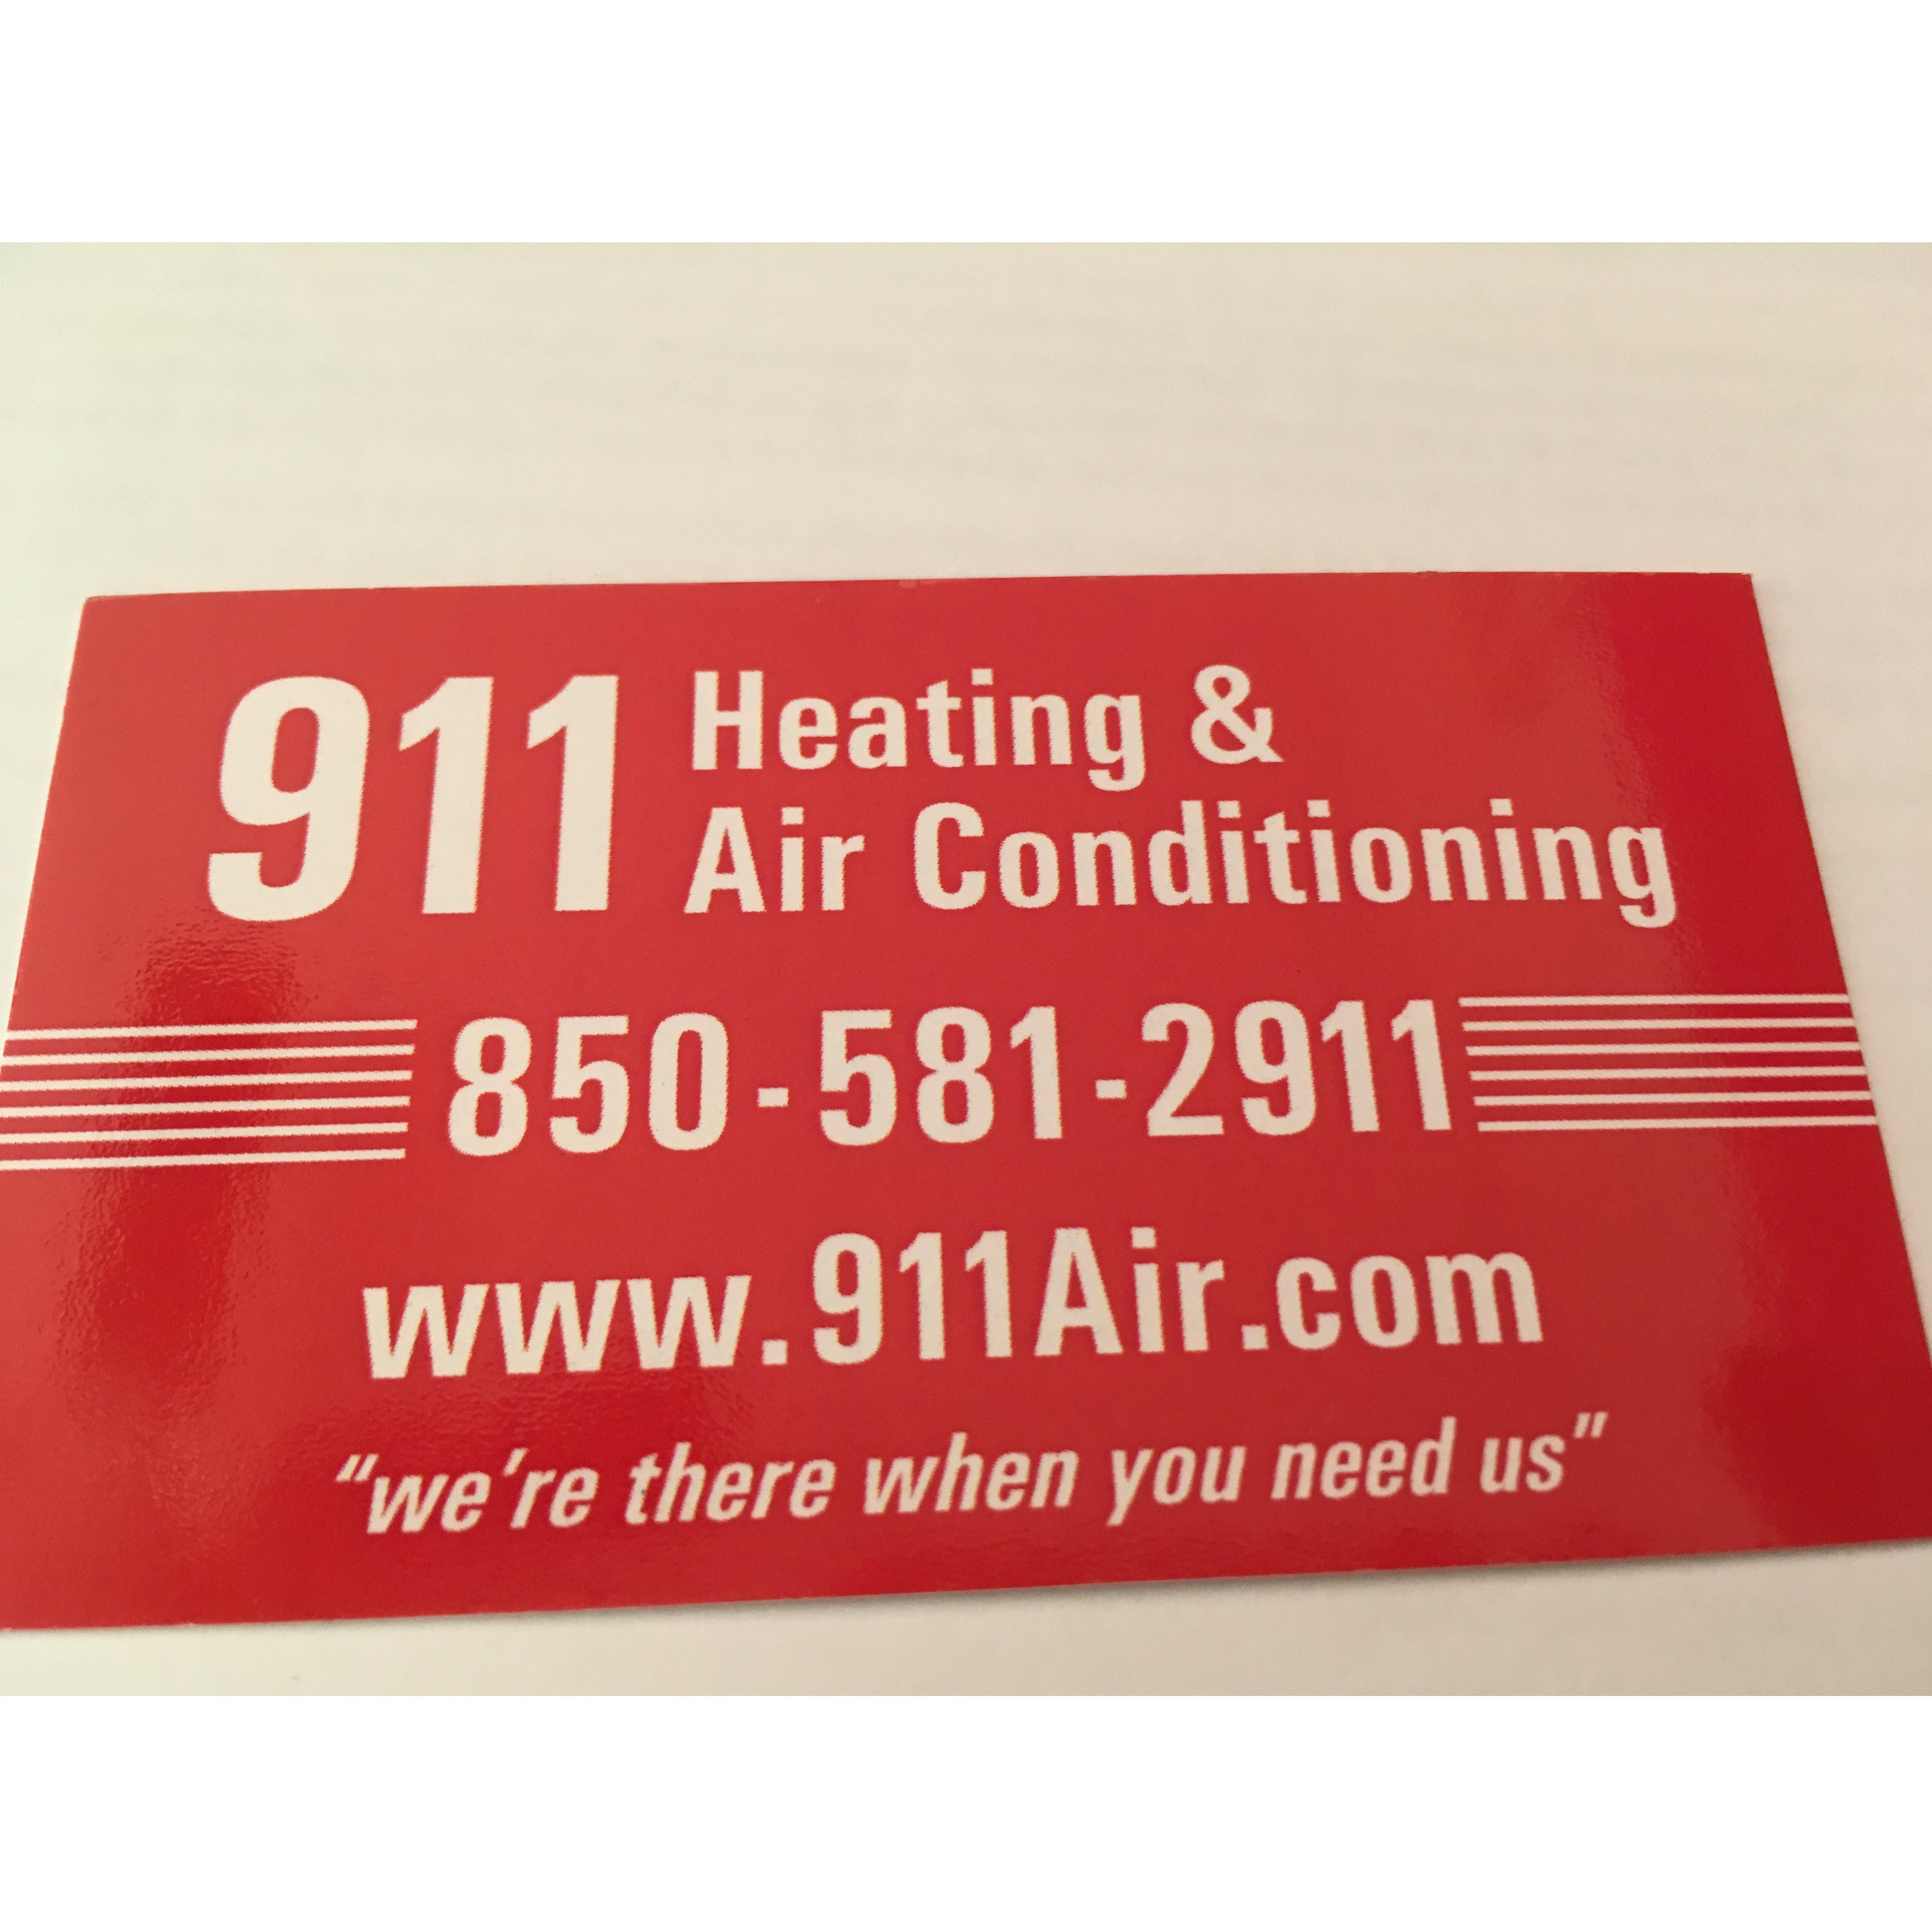 911 Heating & Air Conditioning image 0